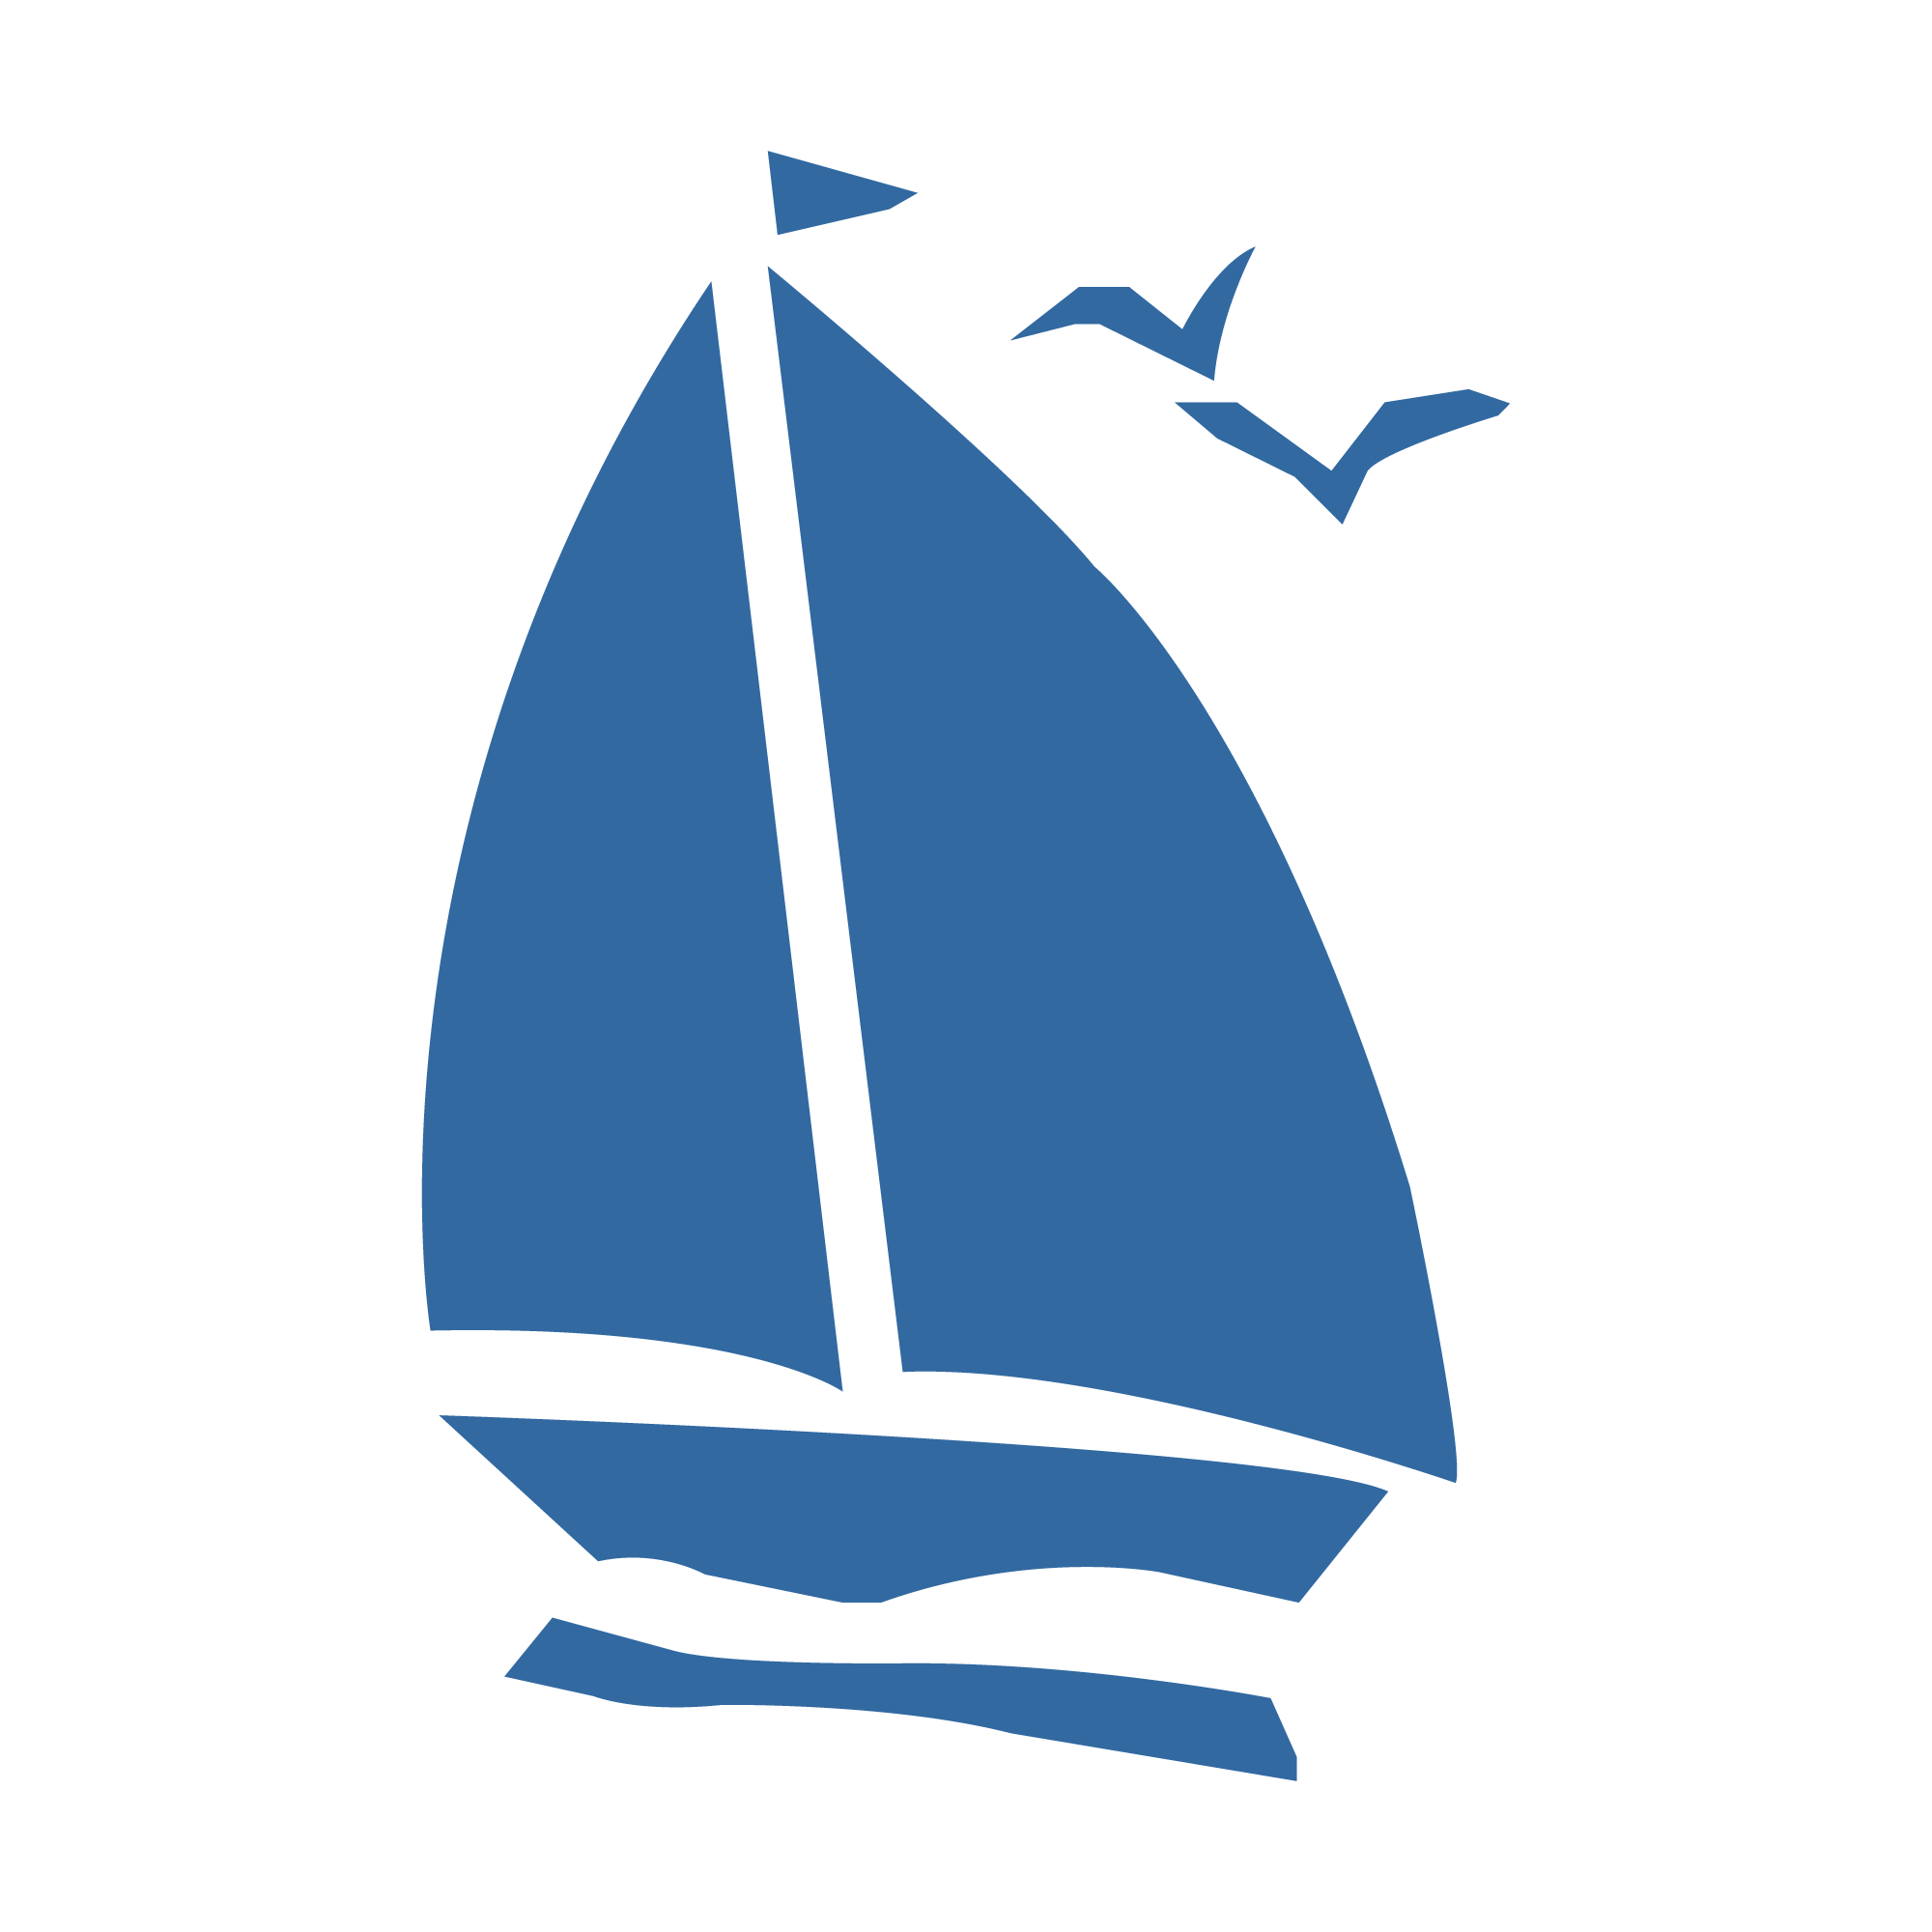 boat_blue2.png